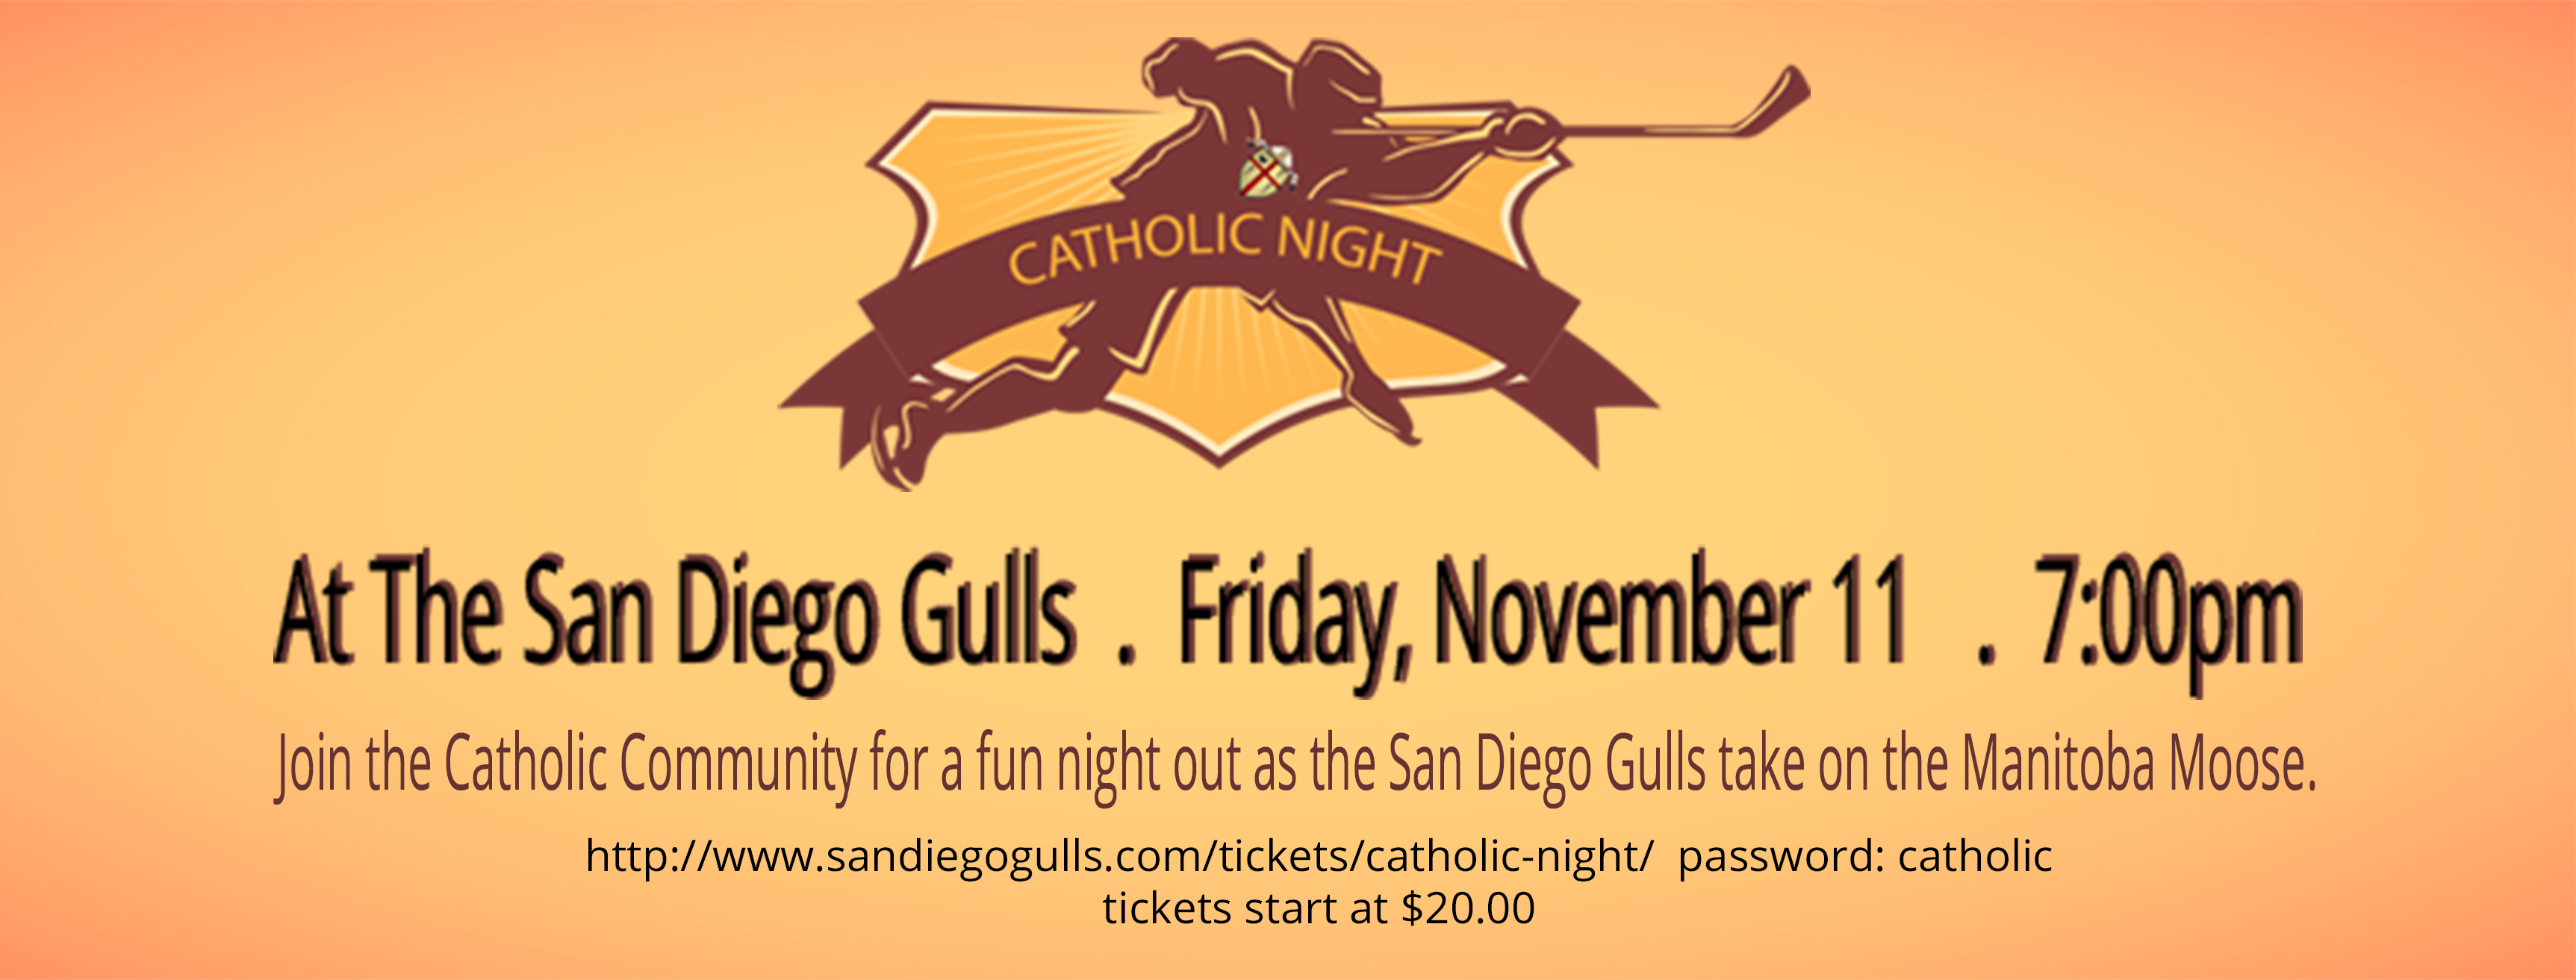 Catholic Night at the San Diego Gulls